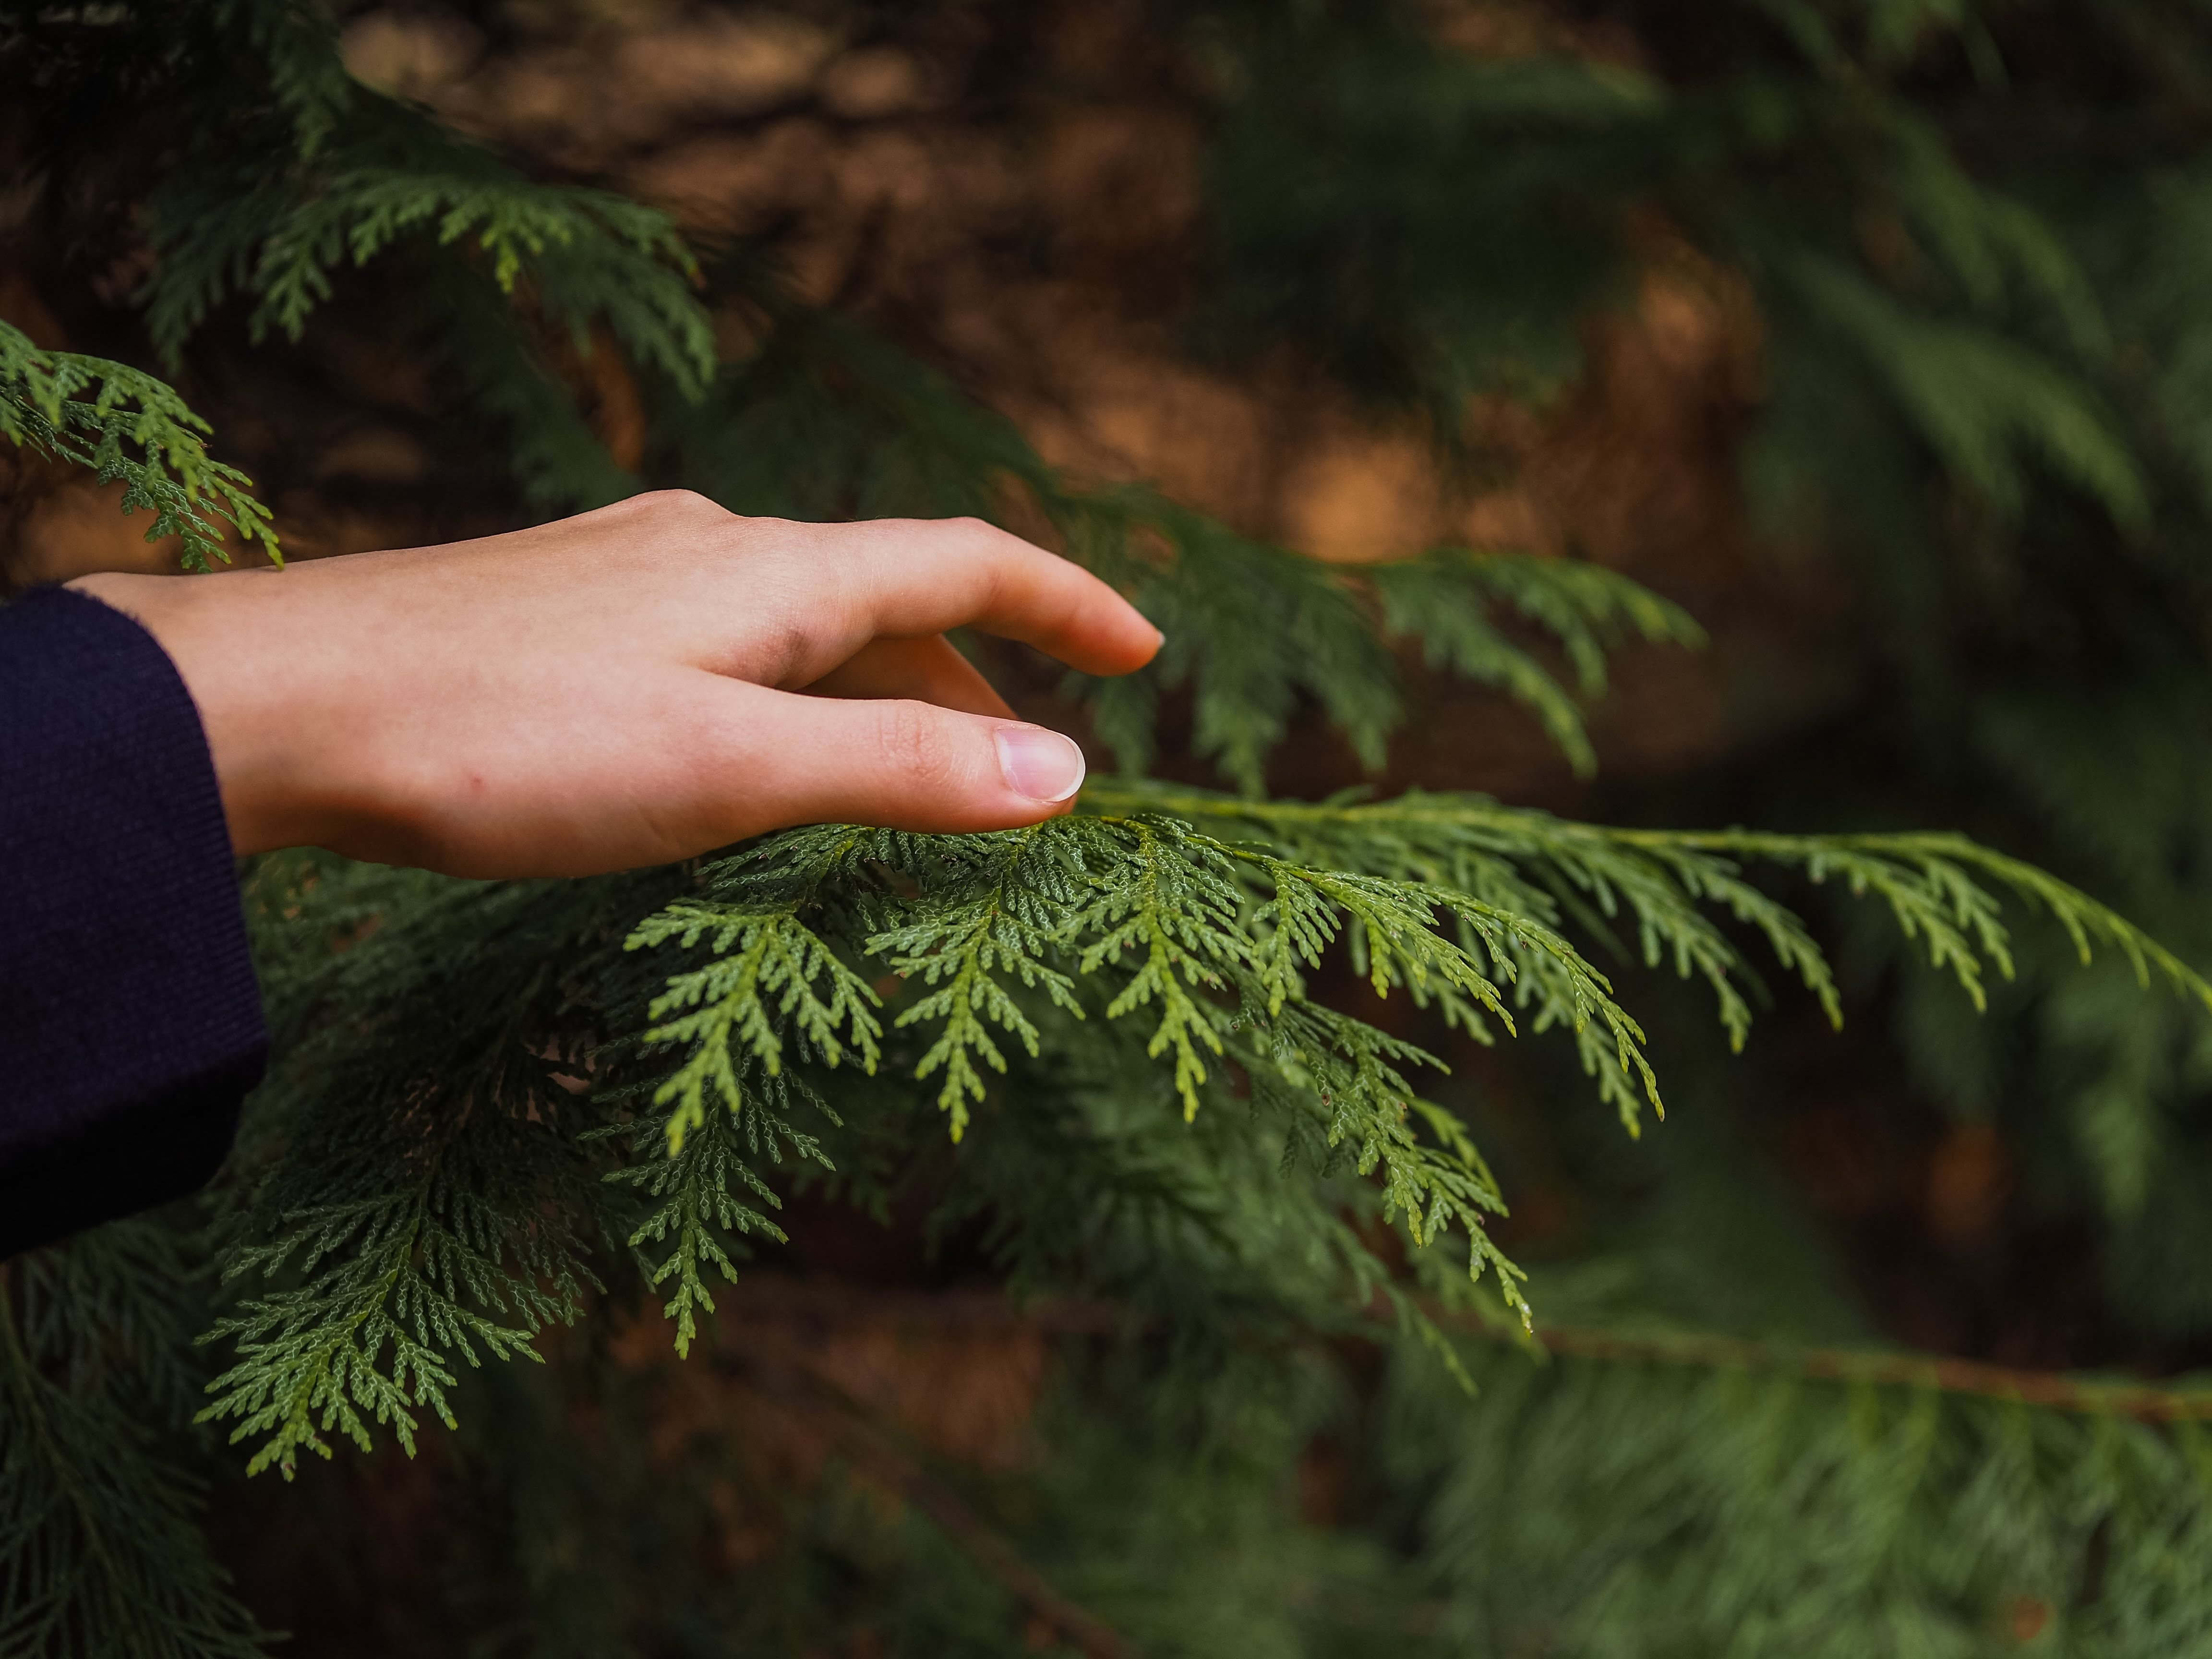 person touching the Arborvitae palm leaves